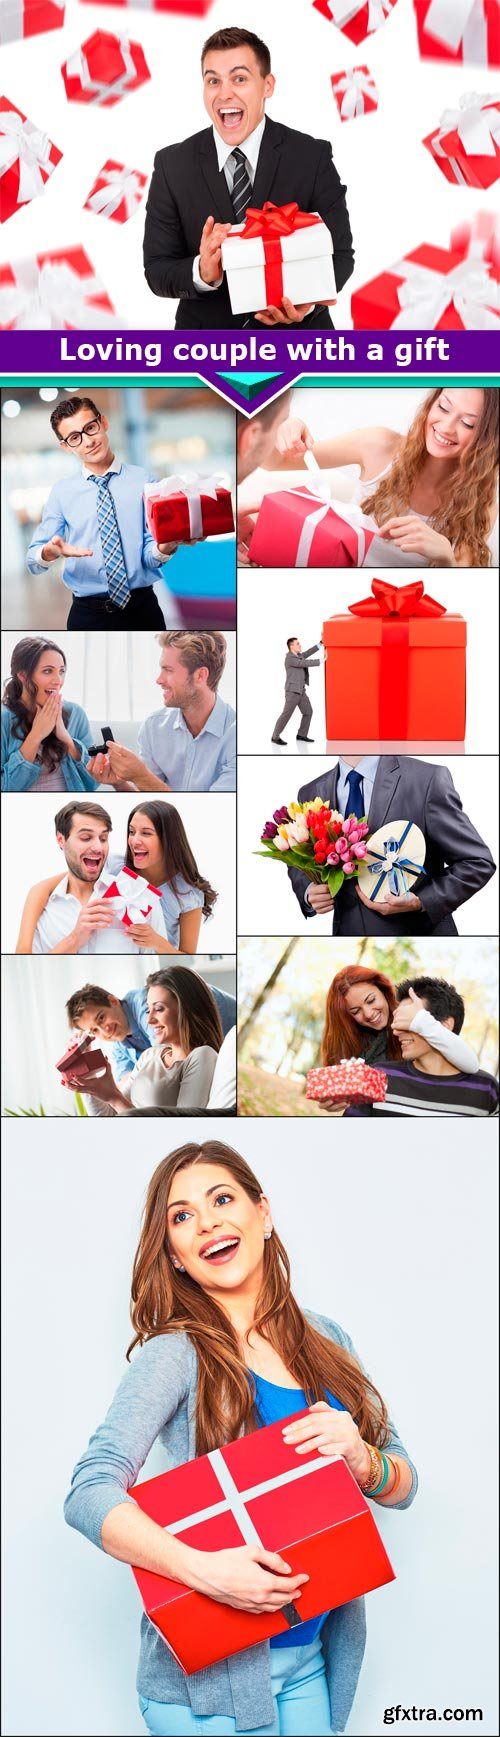 Loving couple with a gift 10x JPEG